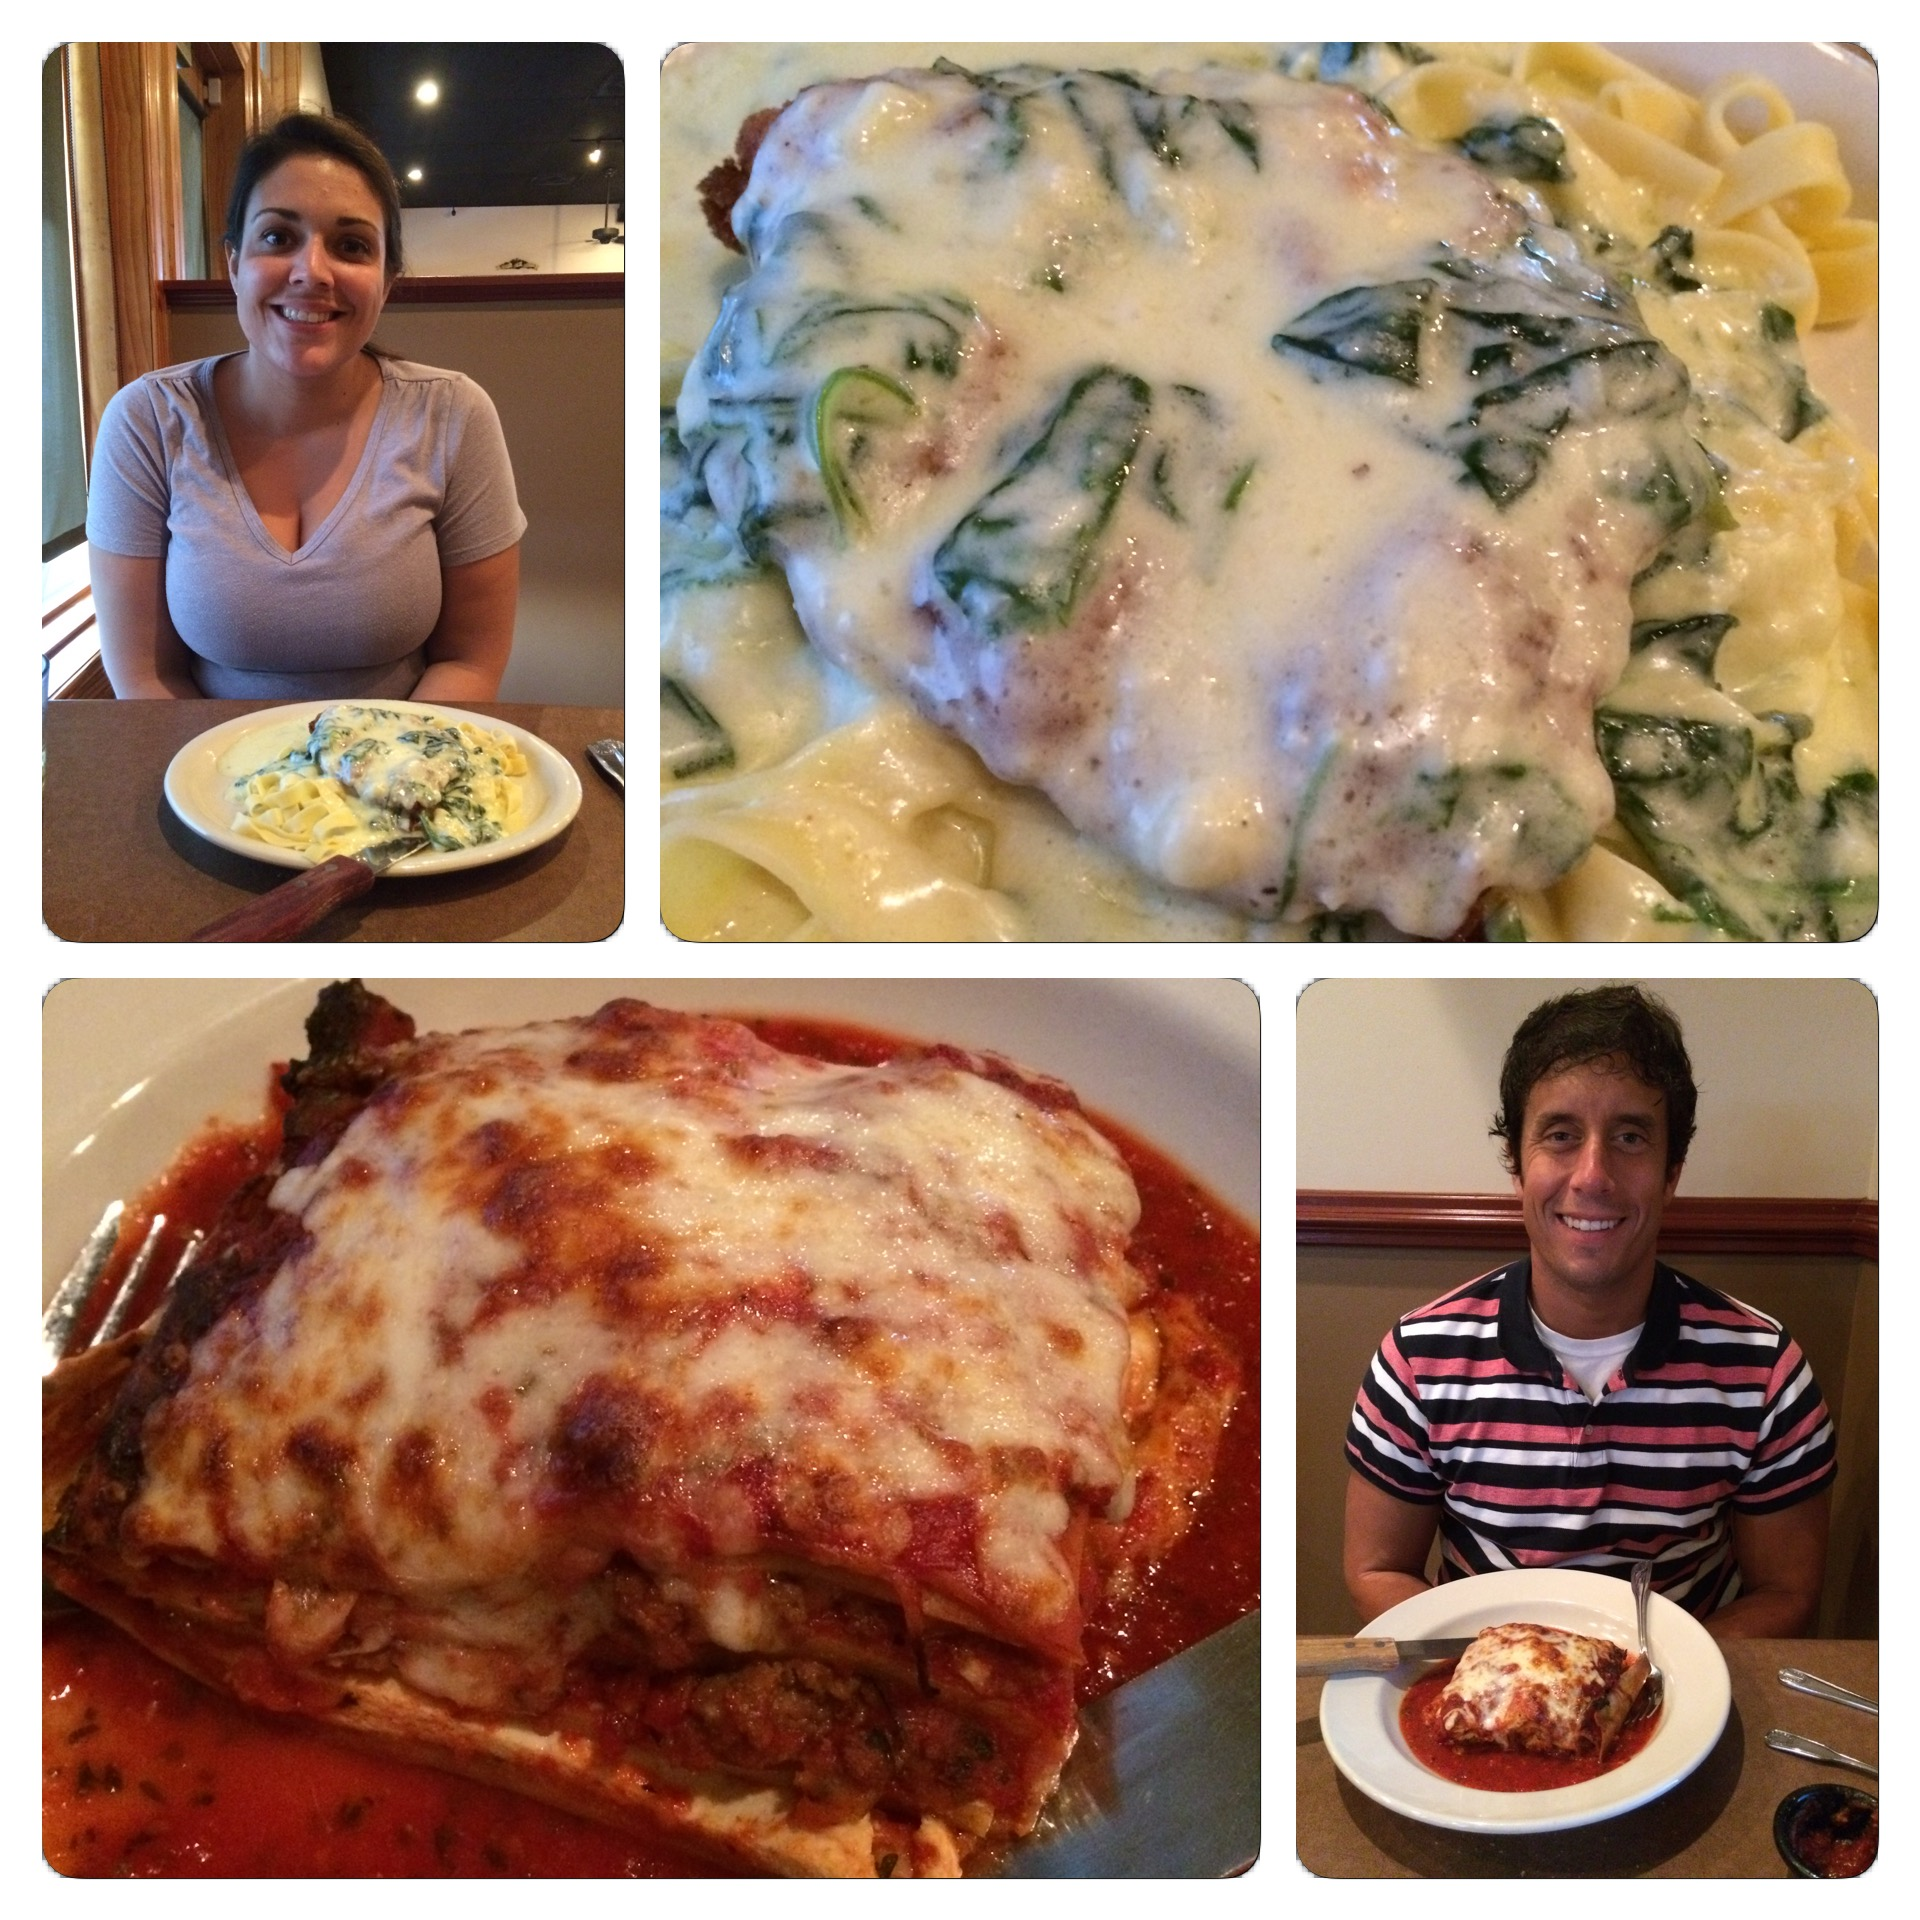 Sidney and I ate dinner at an Italian restaurant called Maggi D's on Friday night.